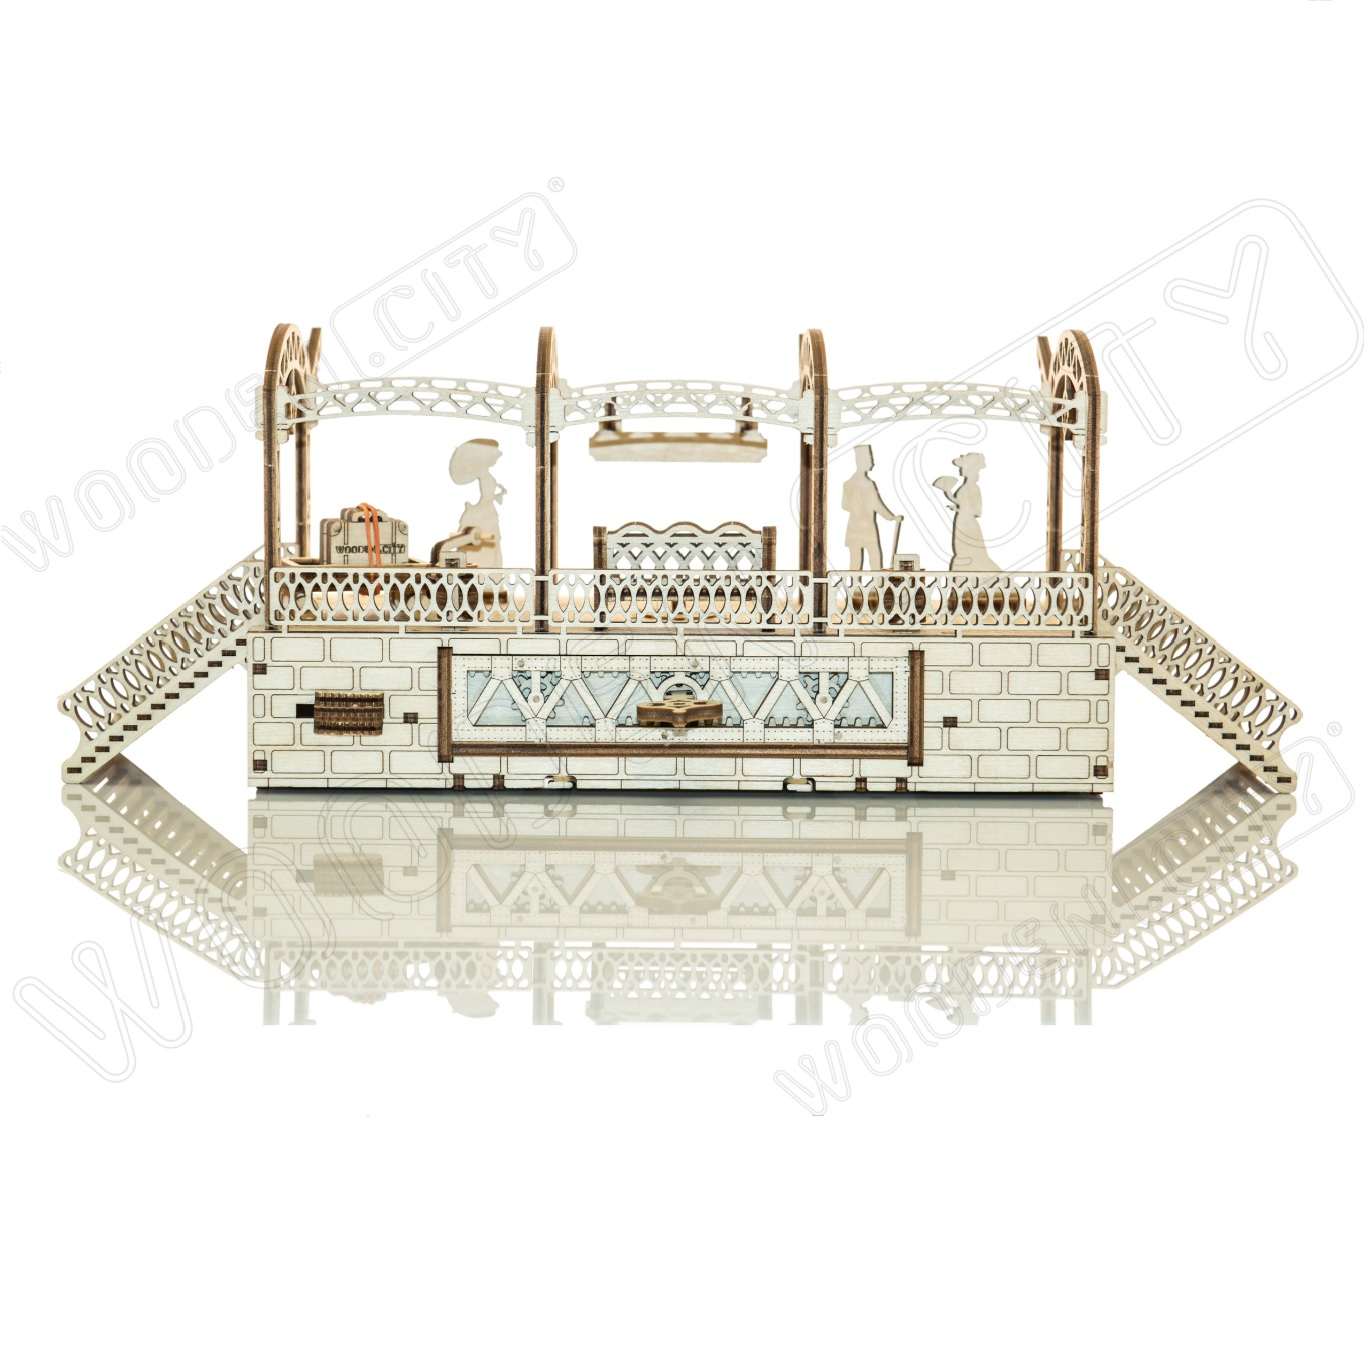 Train Station Laser Cut Model Kit